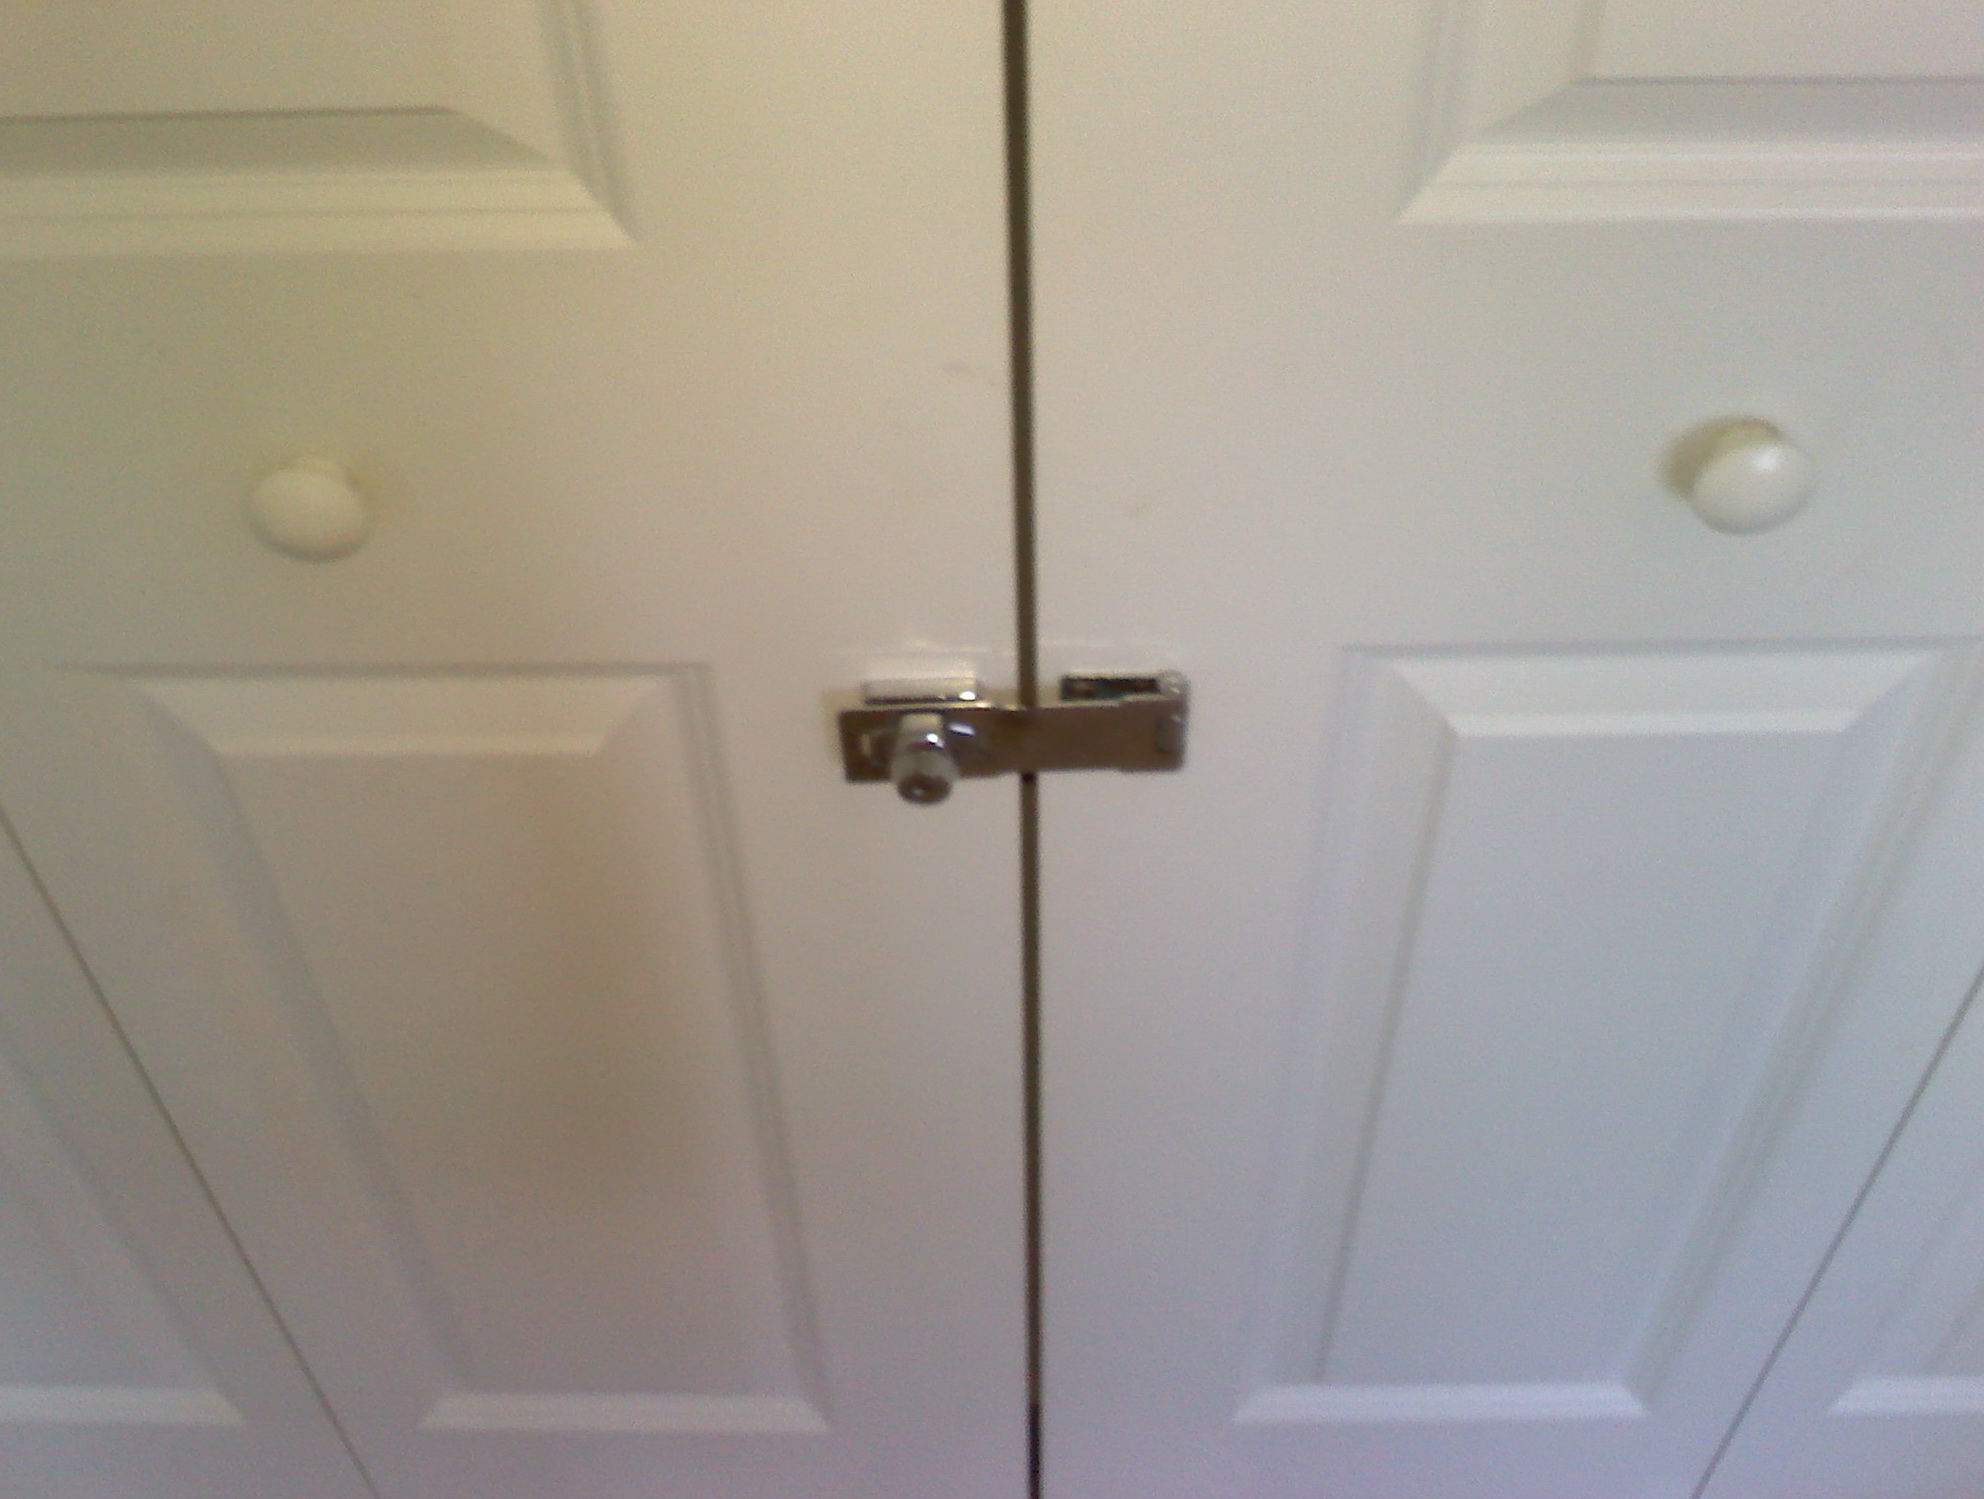 Mirrored sliding closet door lock 22 secrets you - Installing a lock on a bedroom door ...